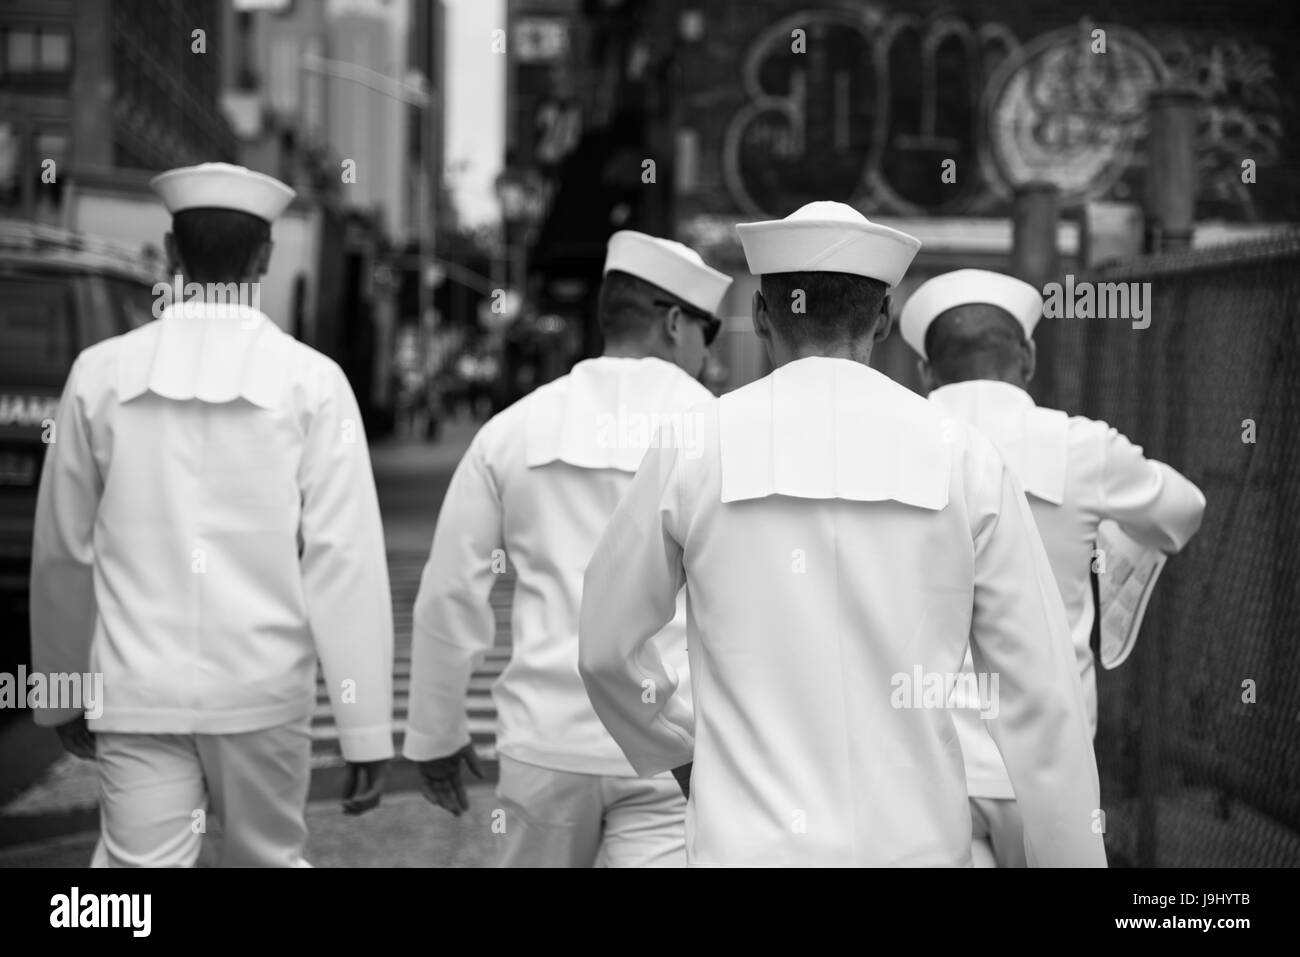 A group of seaman recruit walking in New York City - Stock Image